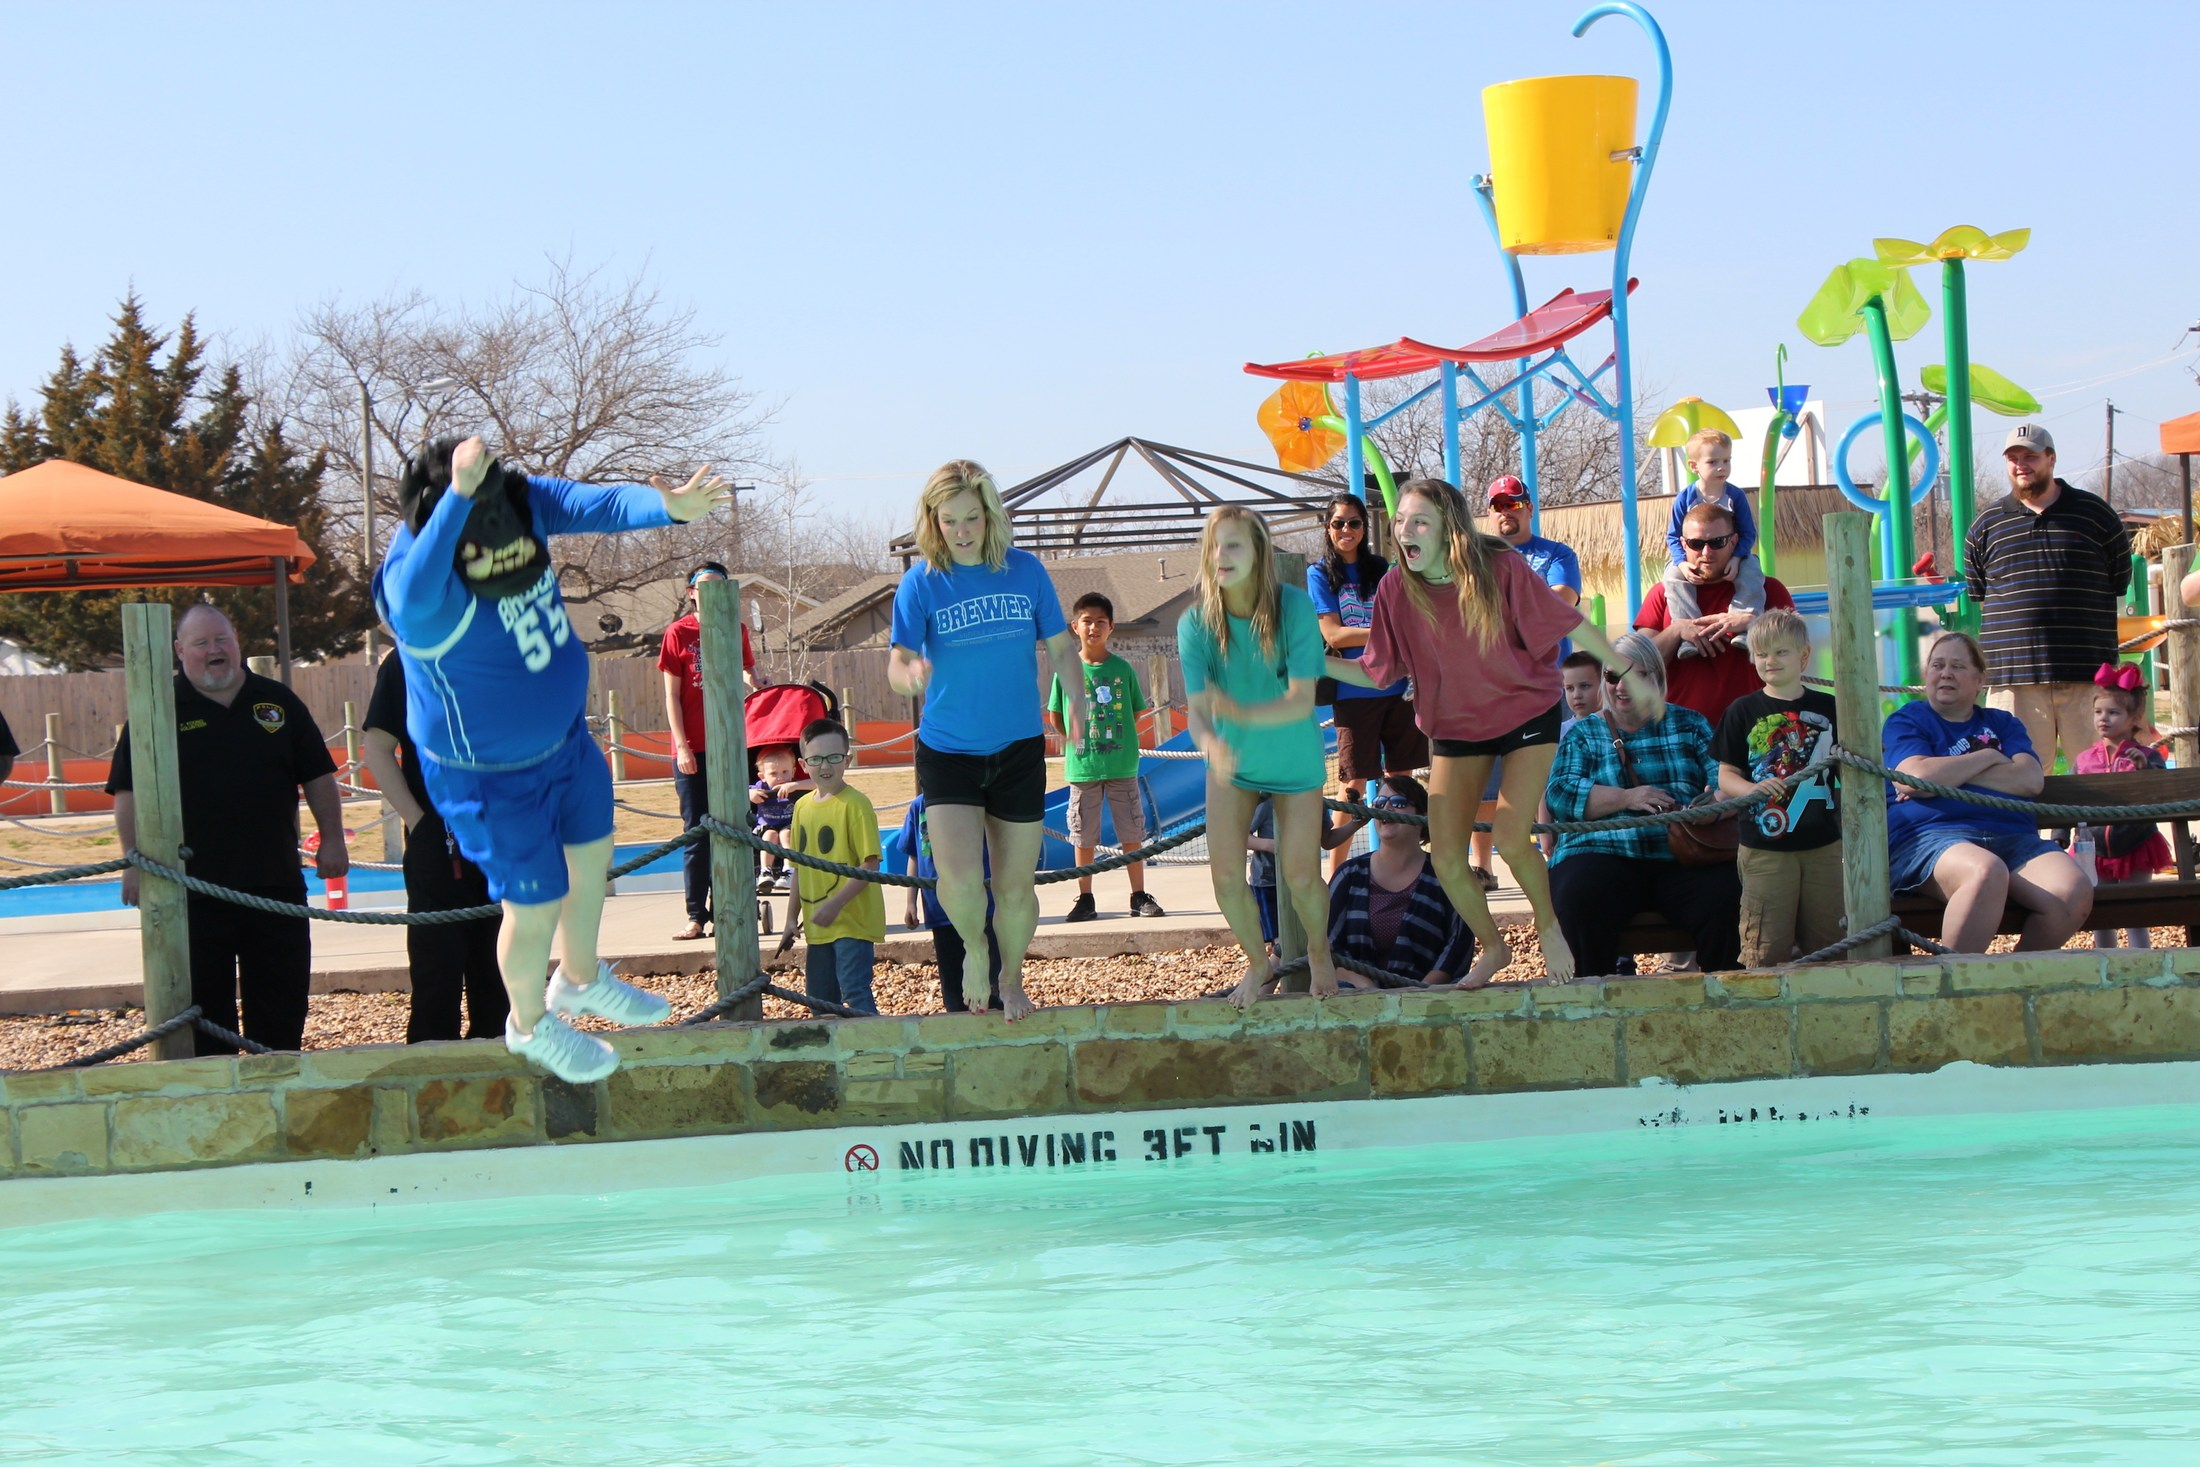 Brewer Middle School raises most money in BRRRewer Bear Plunge.